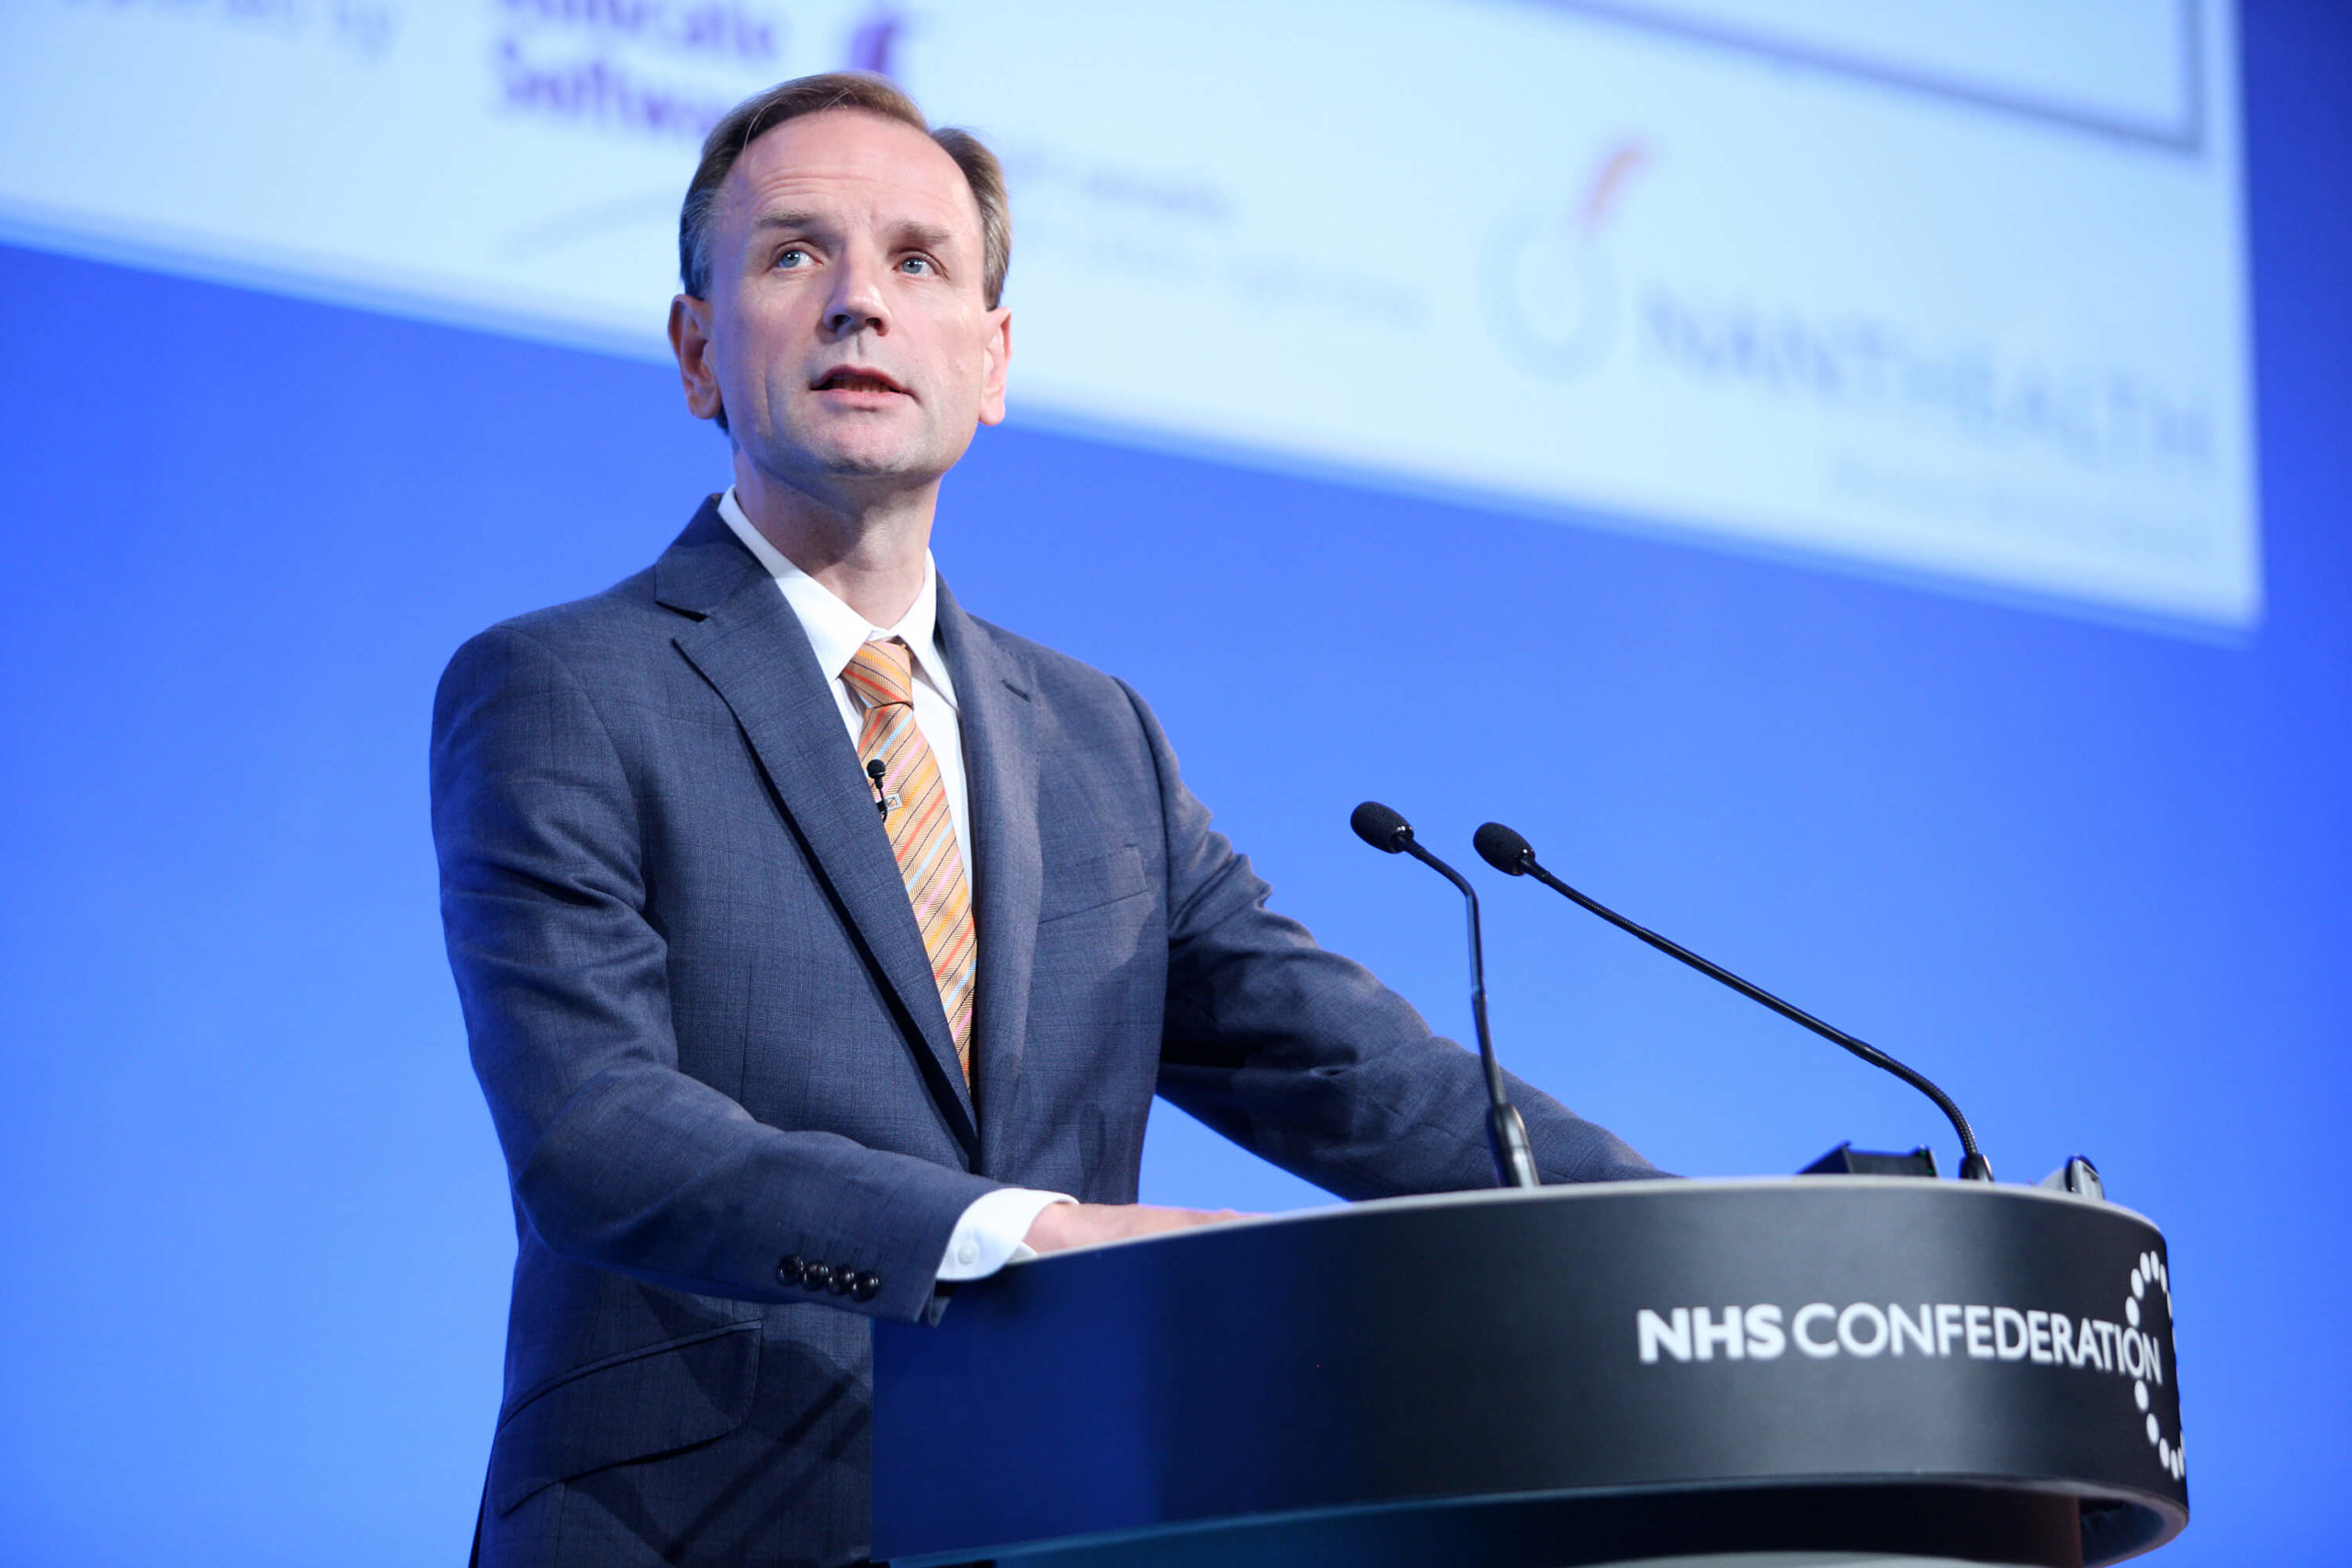 Simon Stevens, Chief Executive of the National Health Service in England